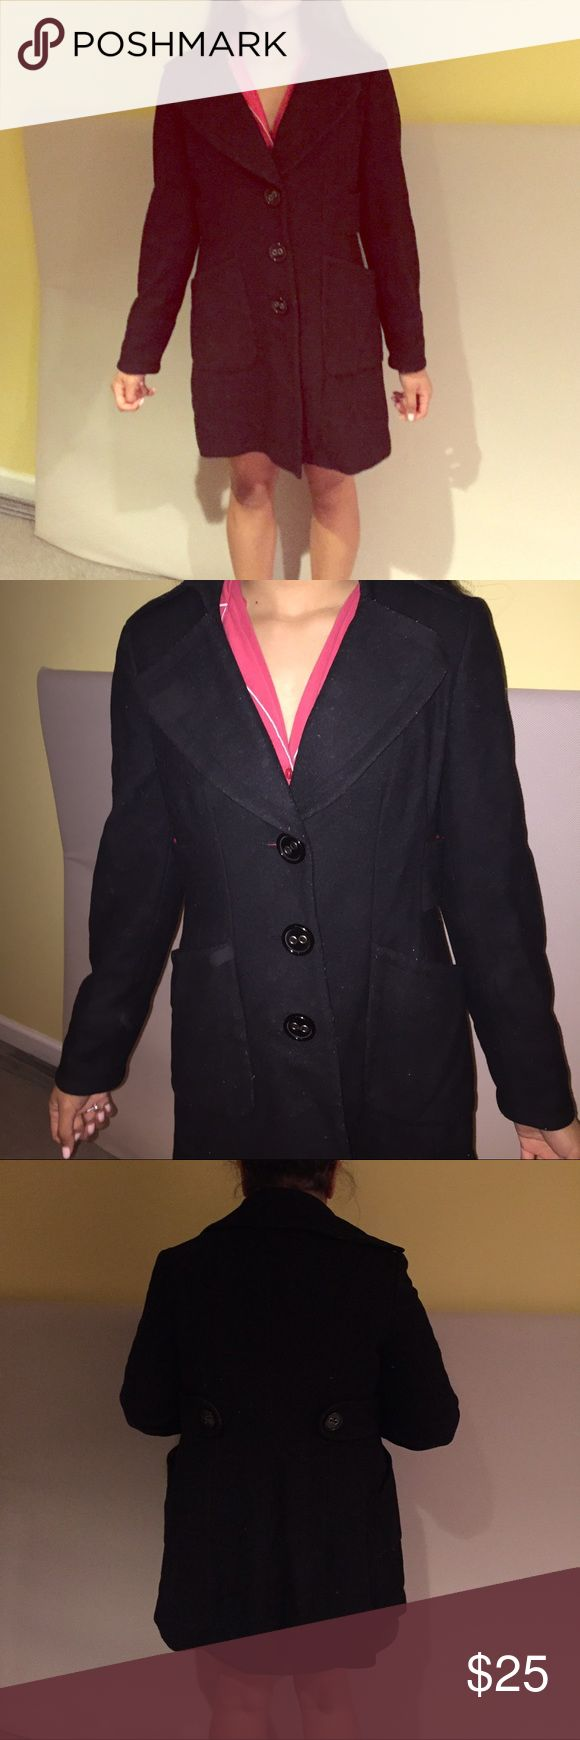 1000 Ideas About Black Pea Coats On Pinterest Pea Coat